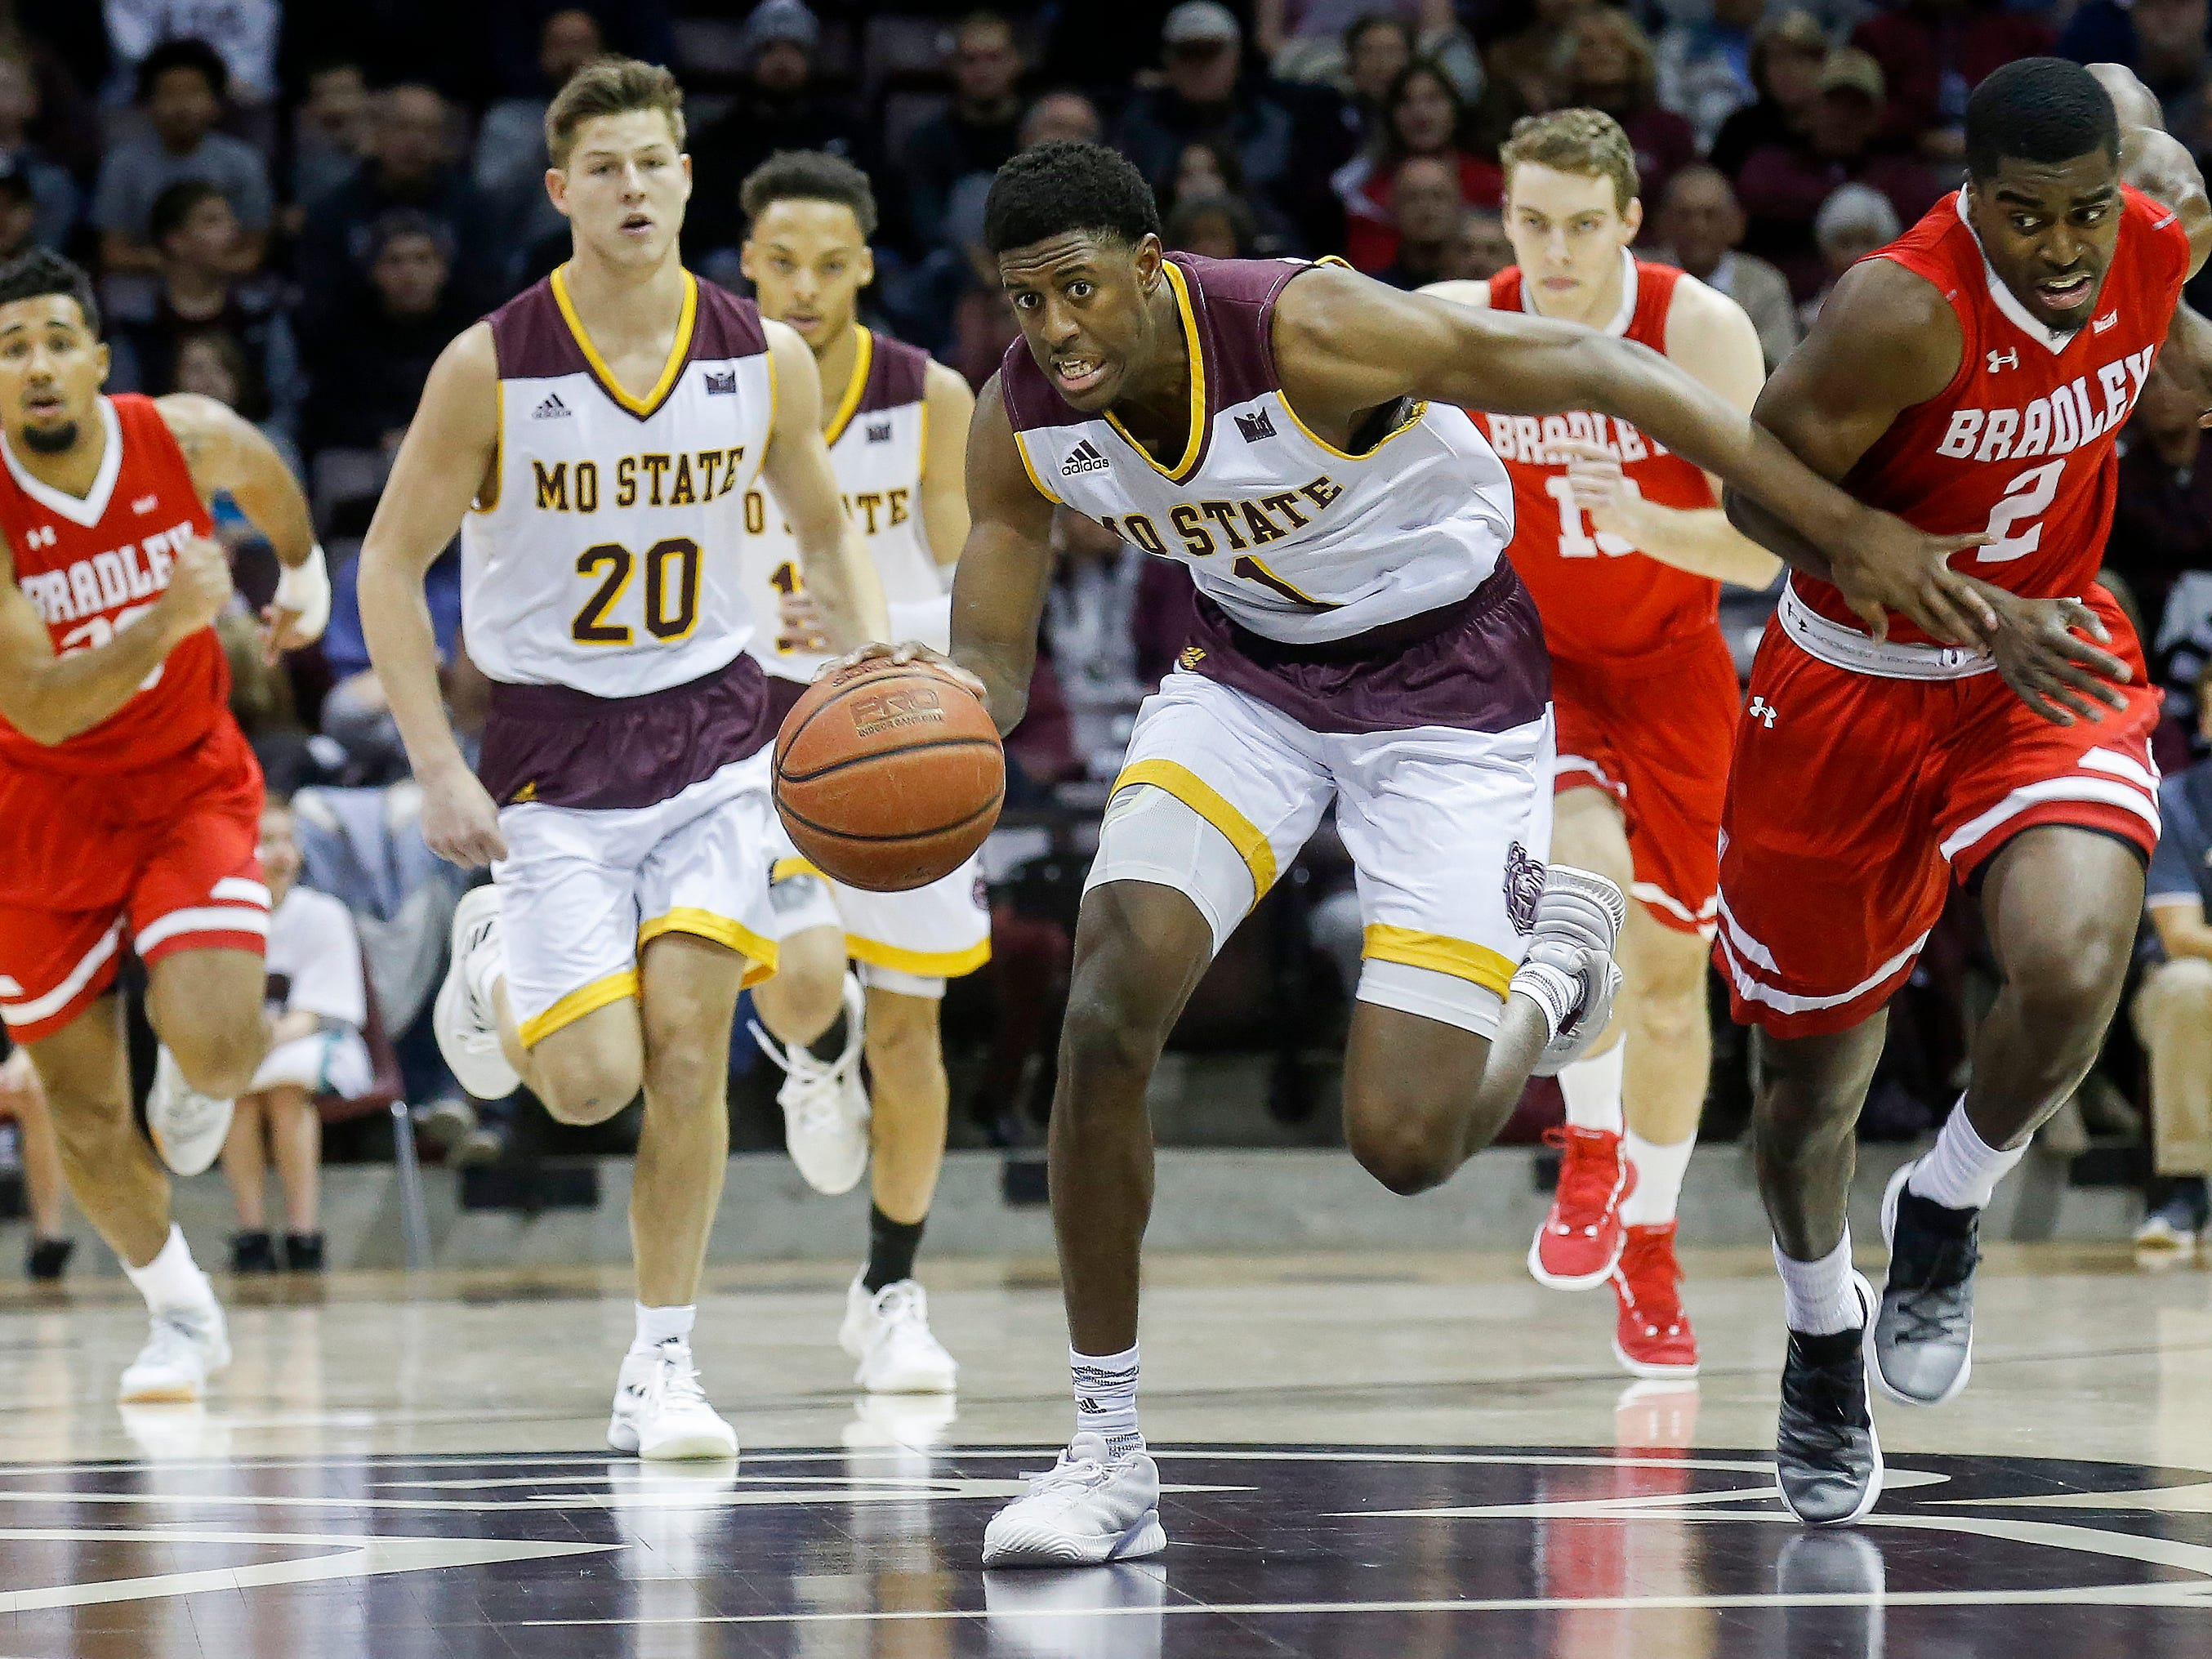 Keandre Cook, of Missouri State, brings the ball down the court during the Bears' game against Bradley at JQH Arena on Saturday, Jan. 26, 2019.